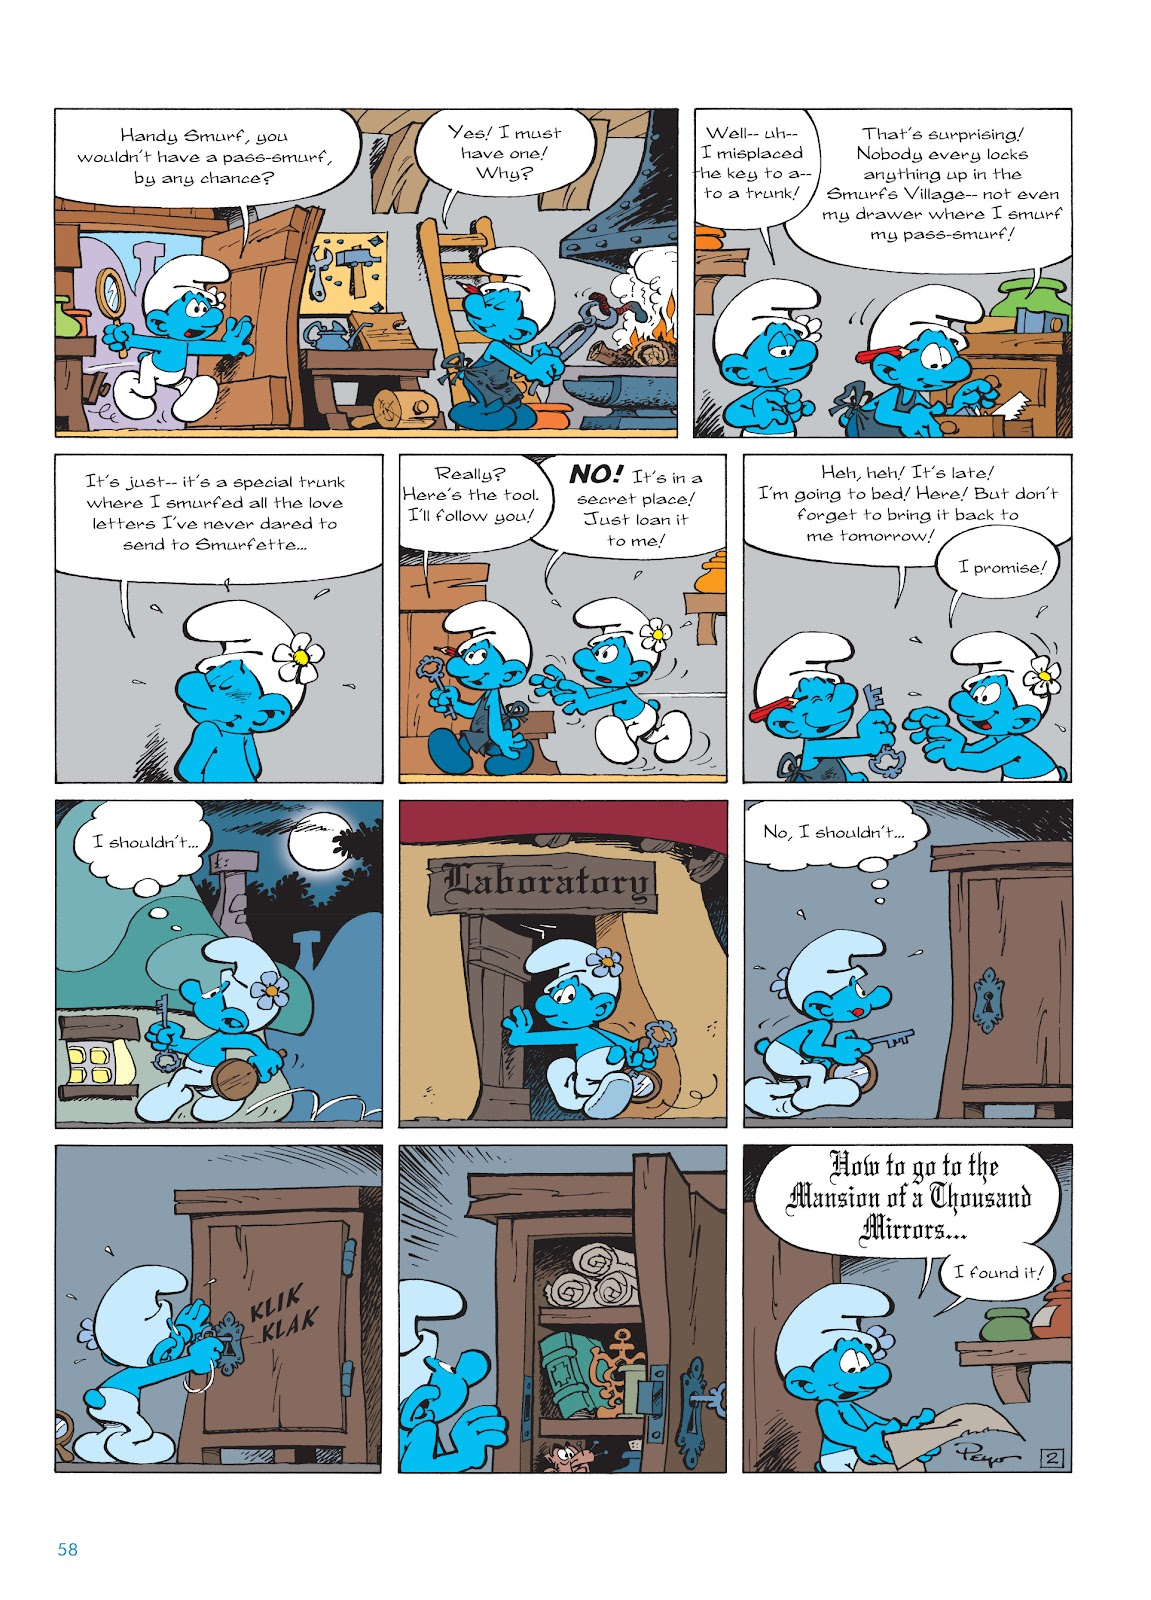 Read online The Smurfs comic -  Issue #22 - 59